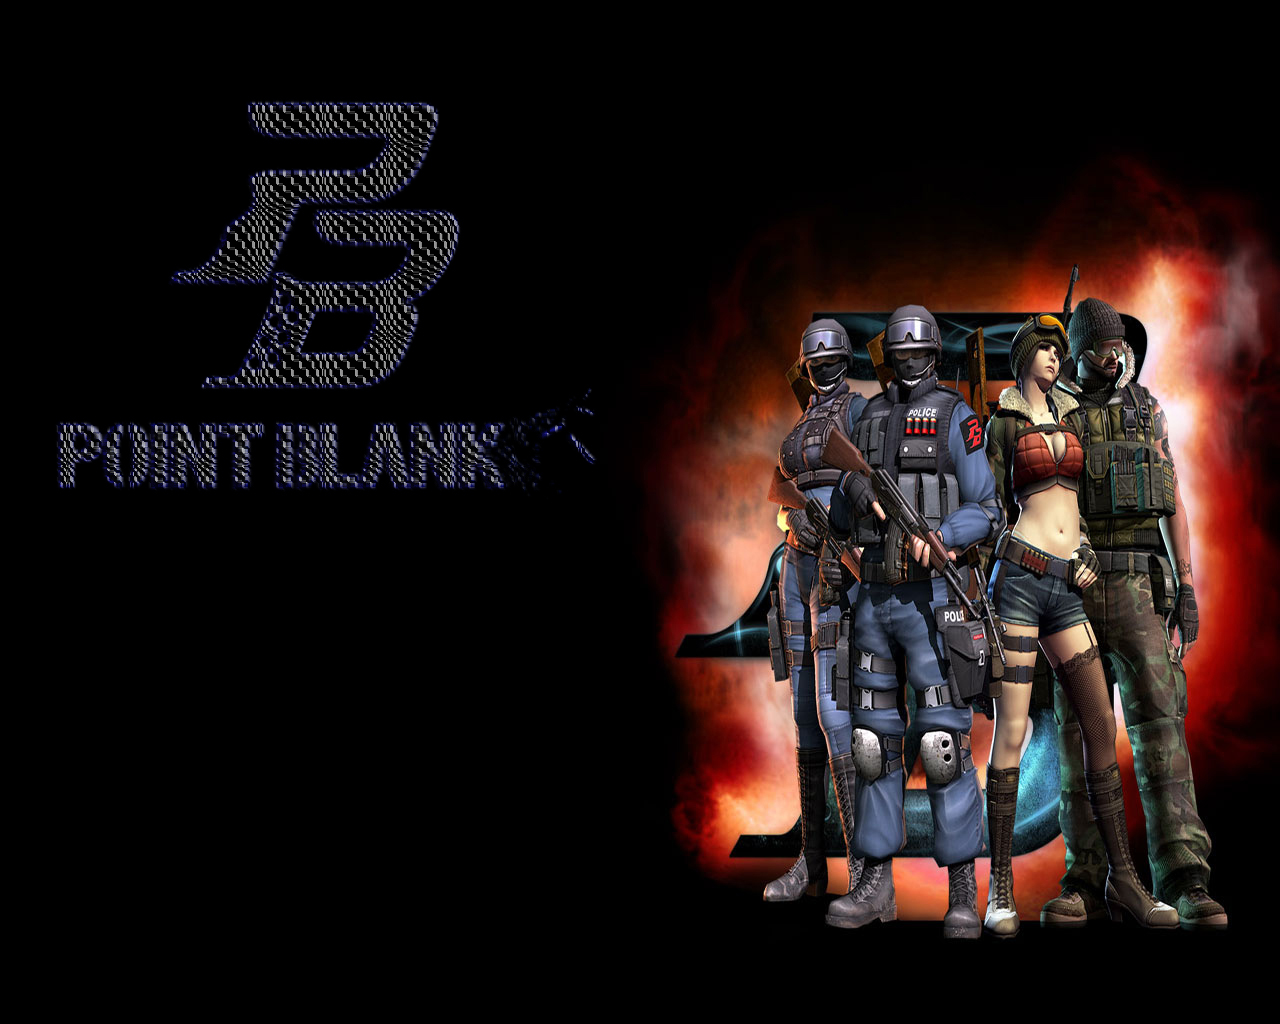 wallpaperkeren19-blogspot-compointblank31